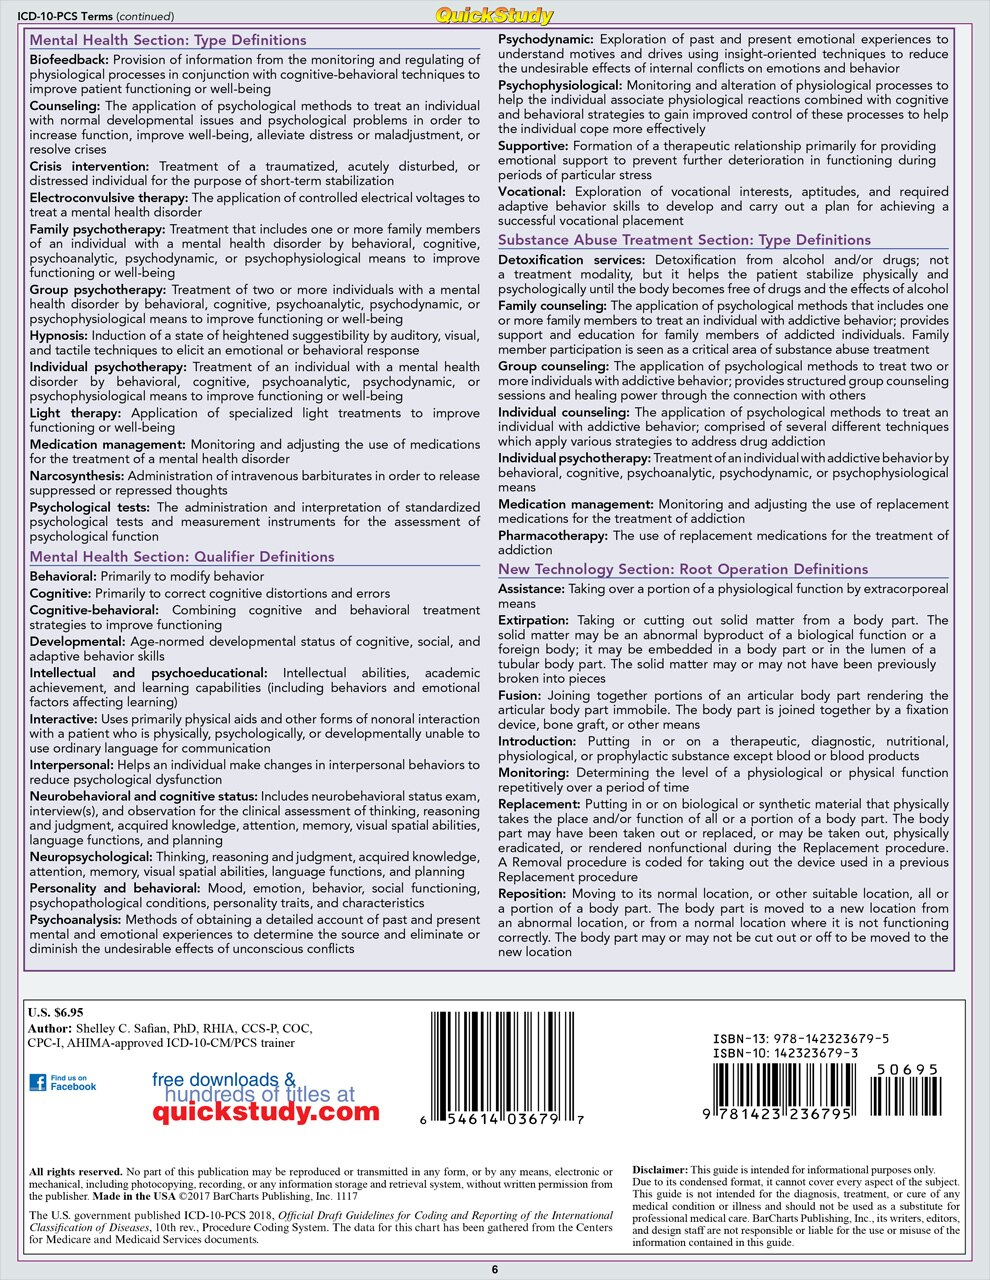 Quick Study QuickStudy Medical Coding ICD-10-PCS Laminated Reference BarCharts Publishing Medical Coding Reference Guide Back Image